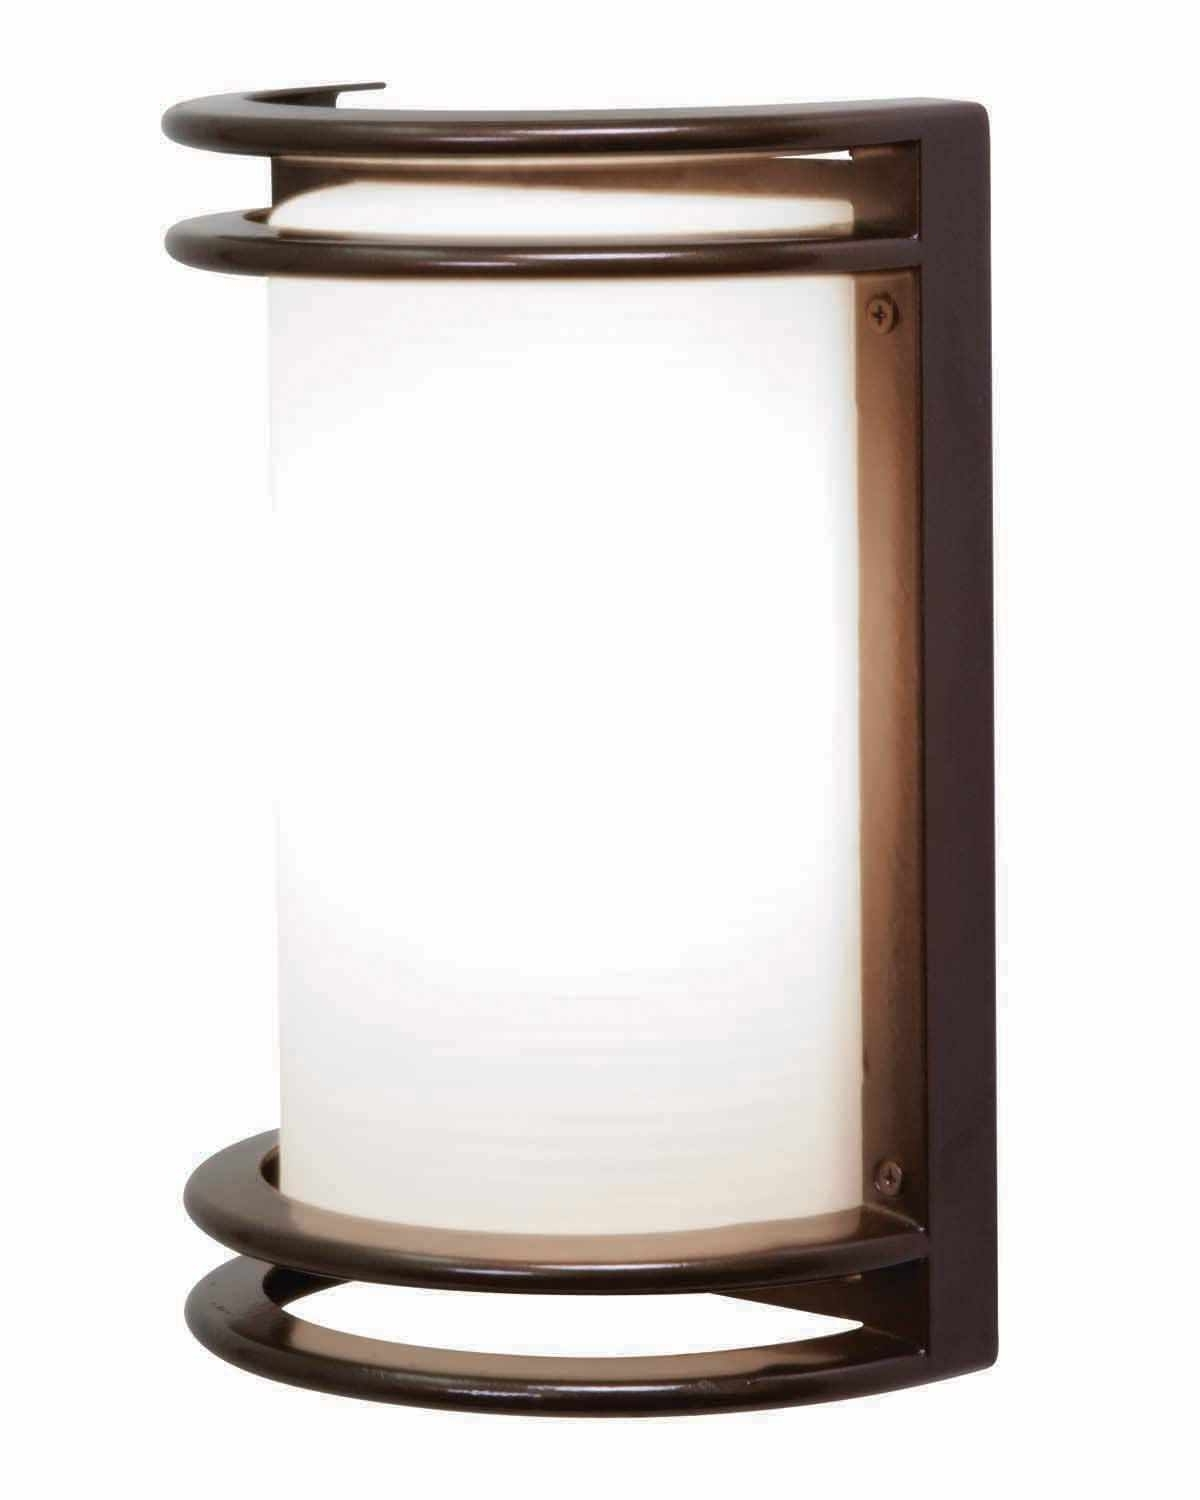 Bronze Zephyr Contemporary Outdoor Wall Sconce — Photo Designs Intended For Most Current Contemporary Outdoor Wall Lighting (View 3 of 20)